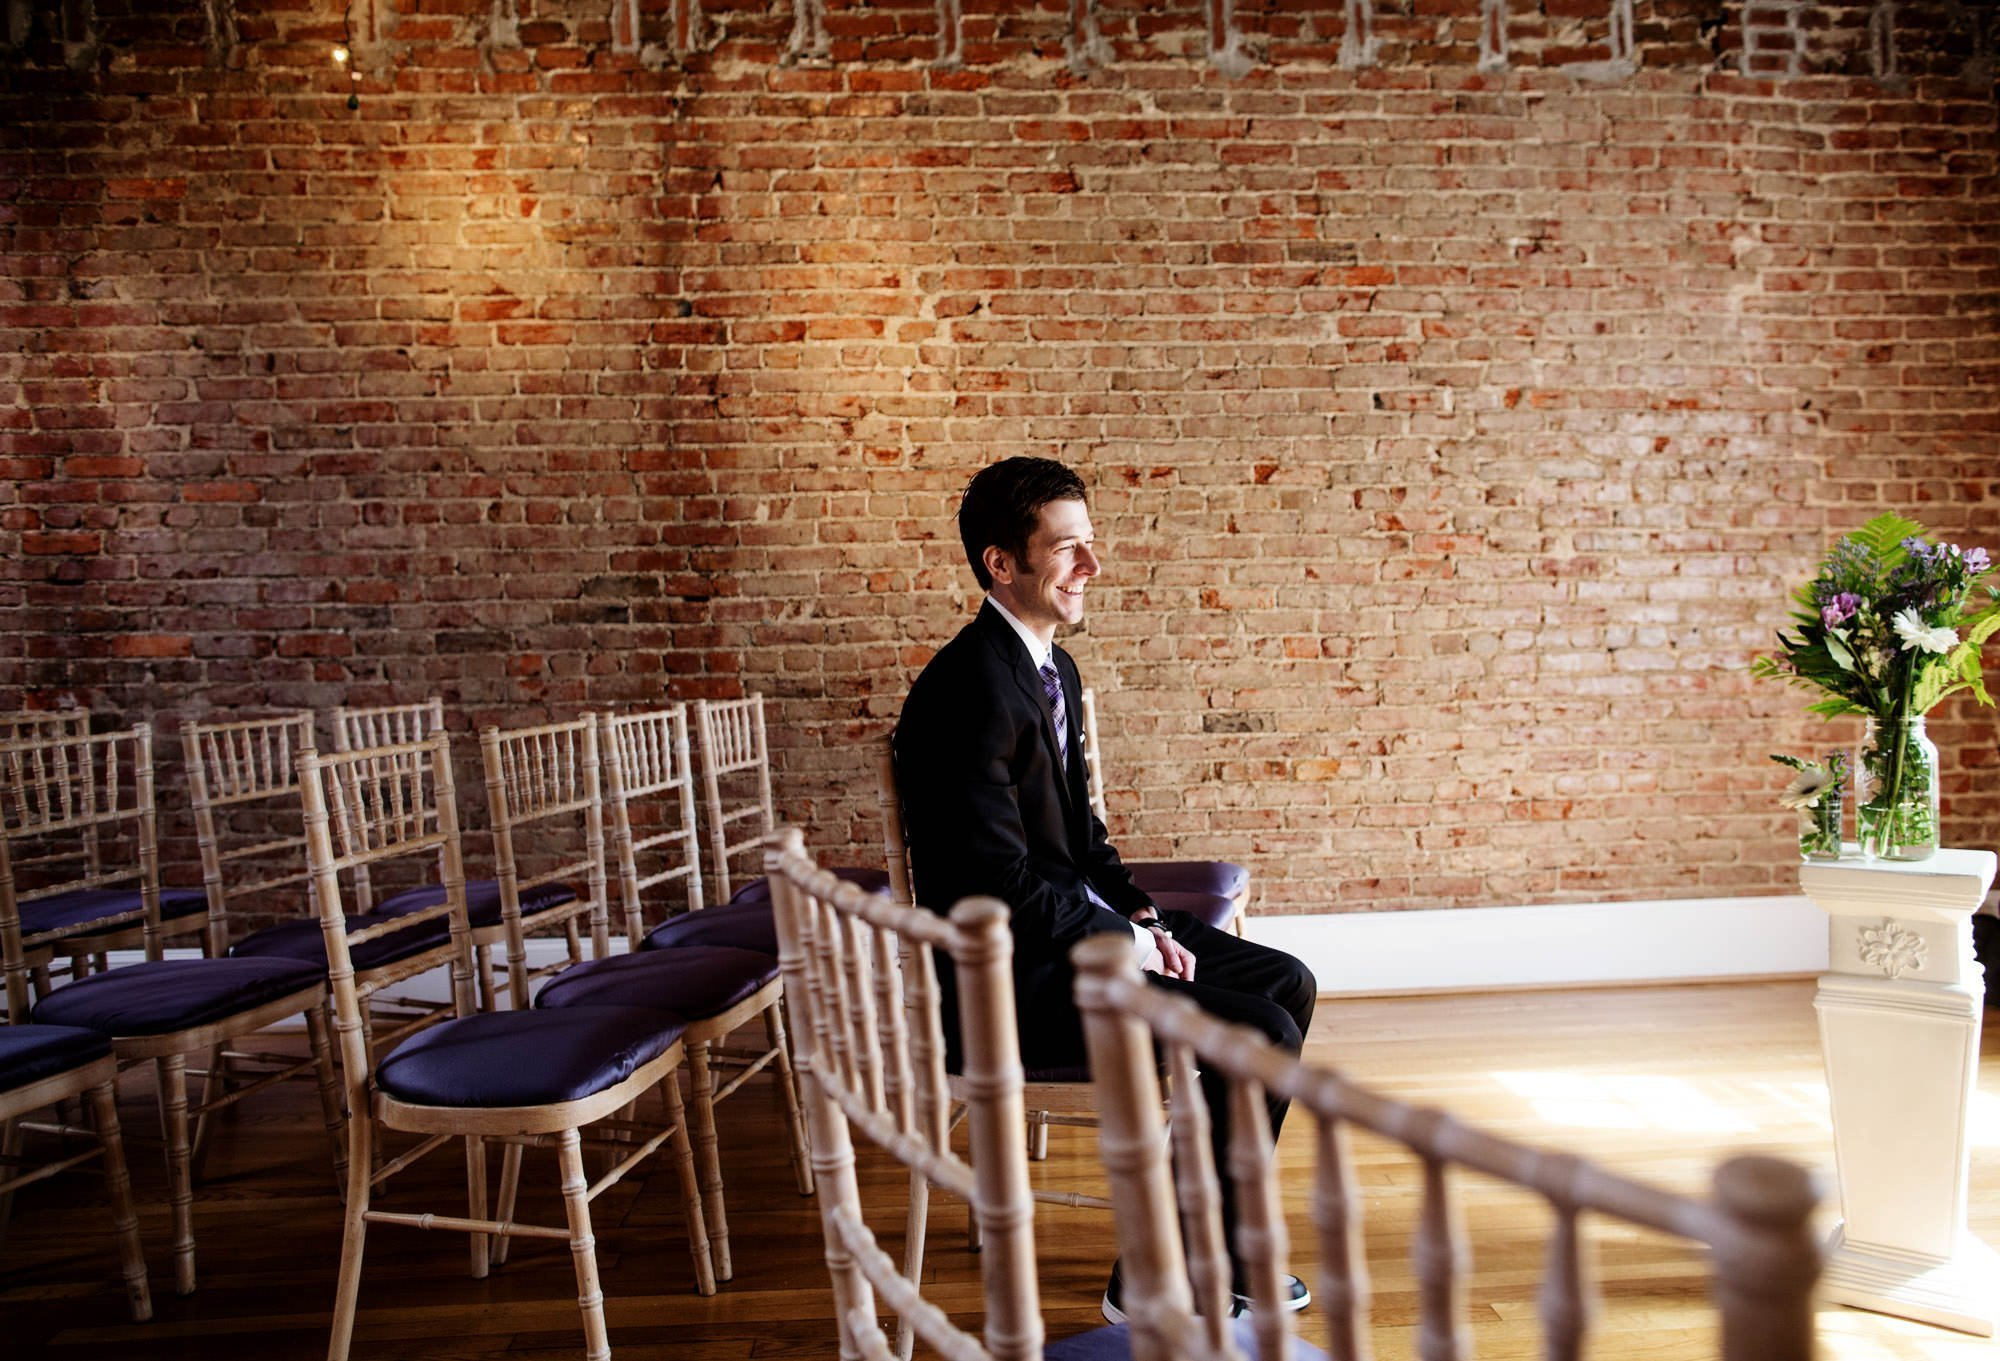 The groom waits for his bride before his Epic Yoga Studio wedding.